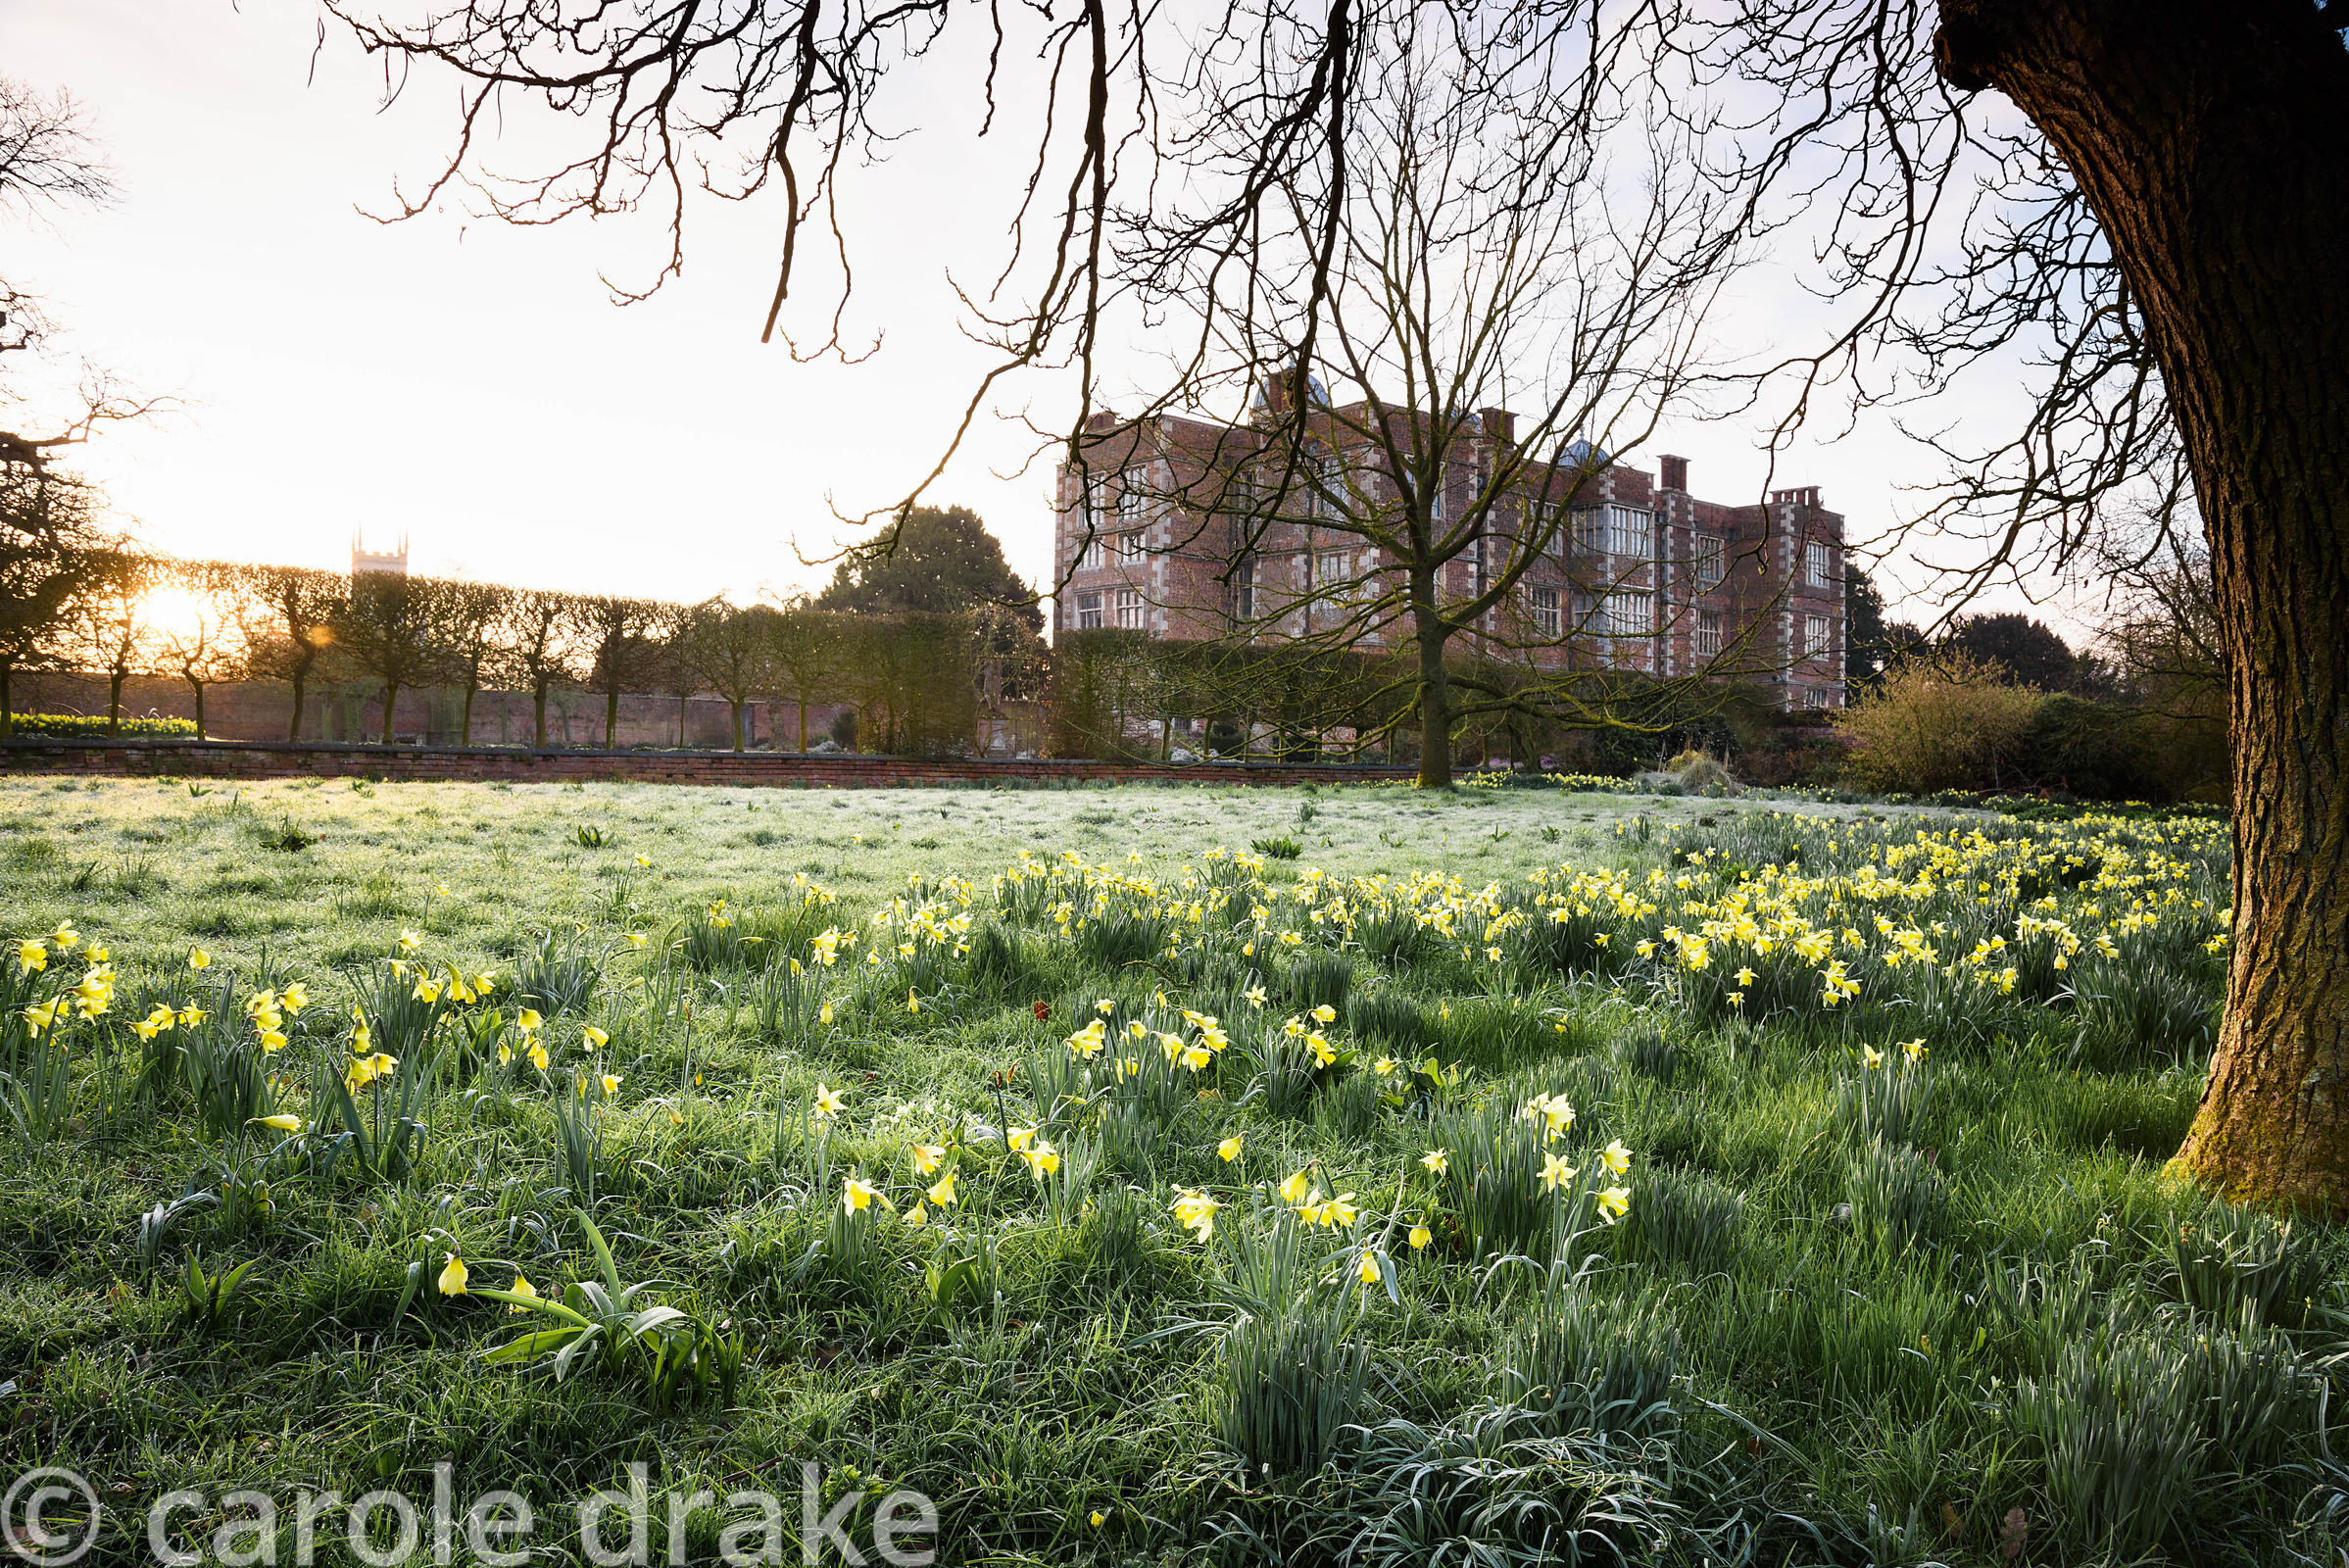 Naturalised daffodils in the Wild Garden at Doddington Hall, Lincolnshire in March